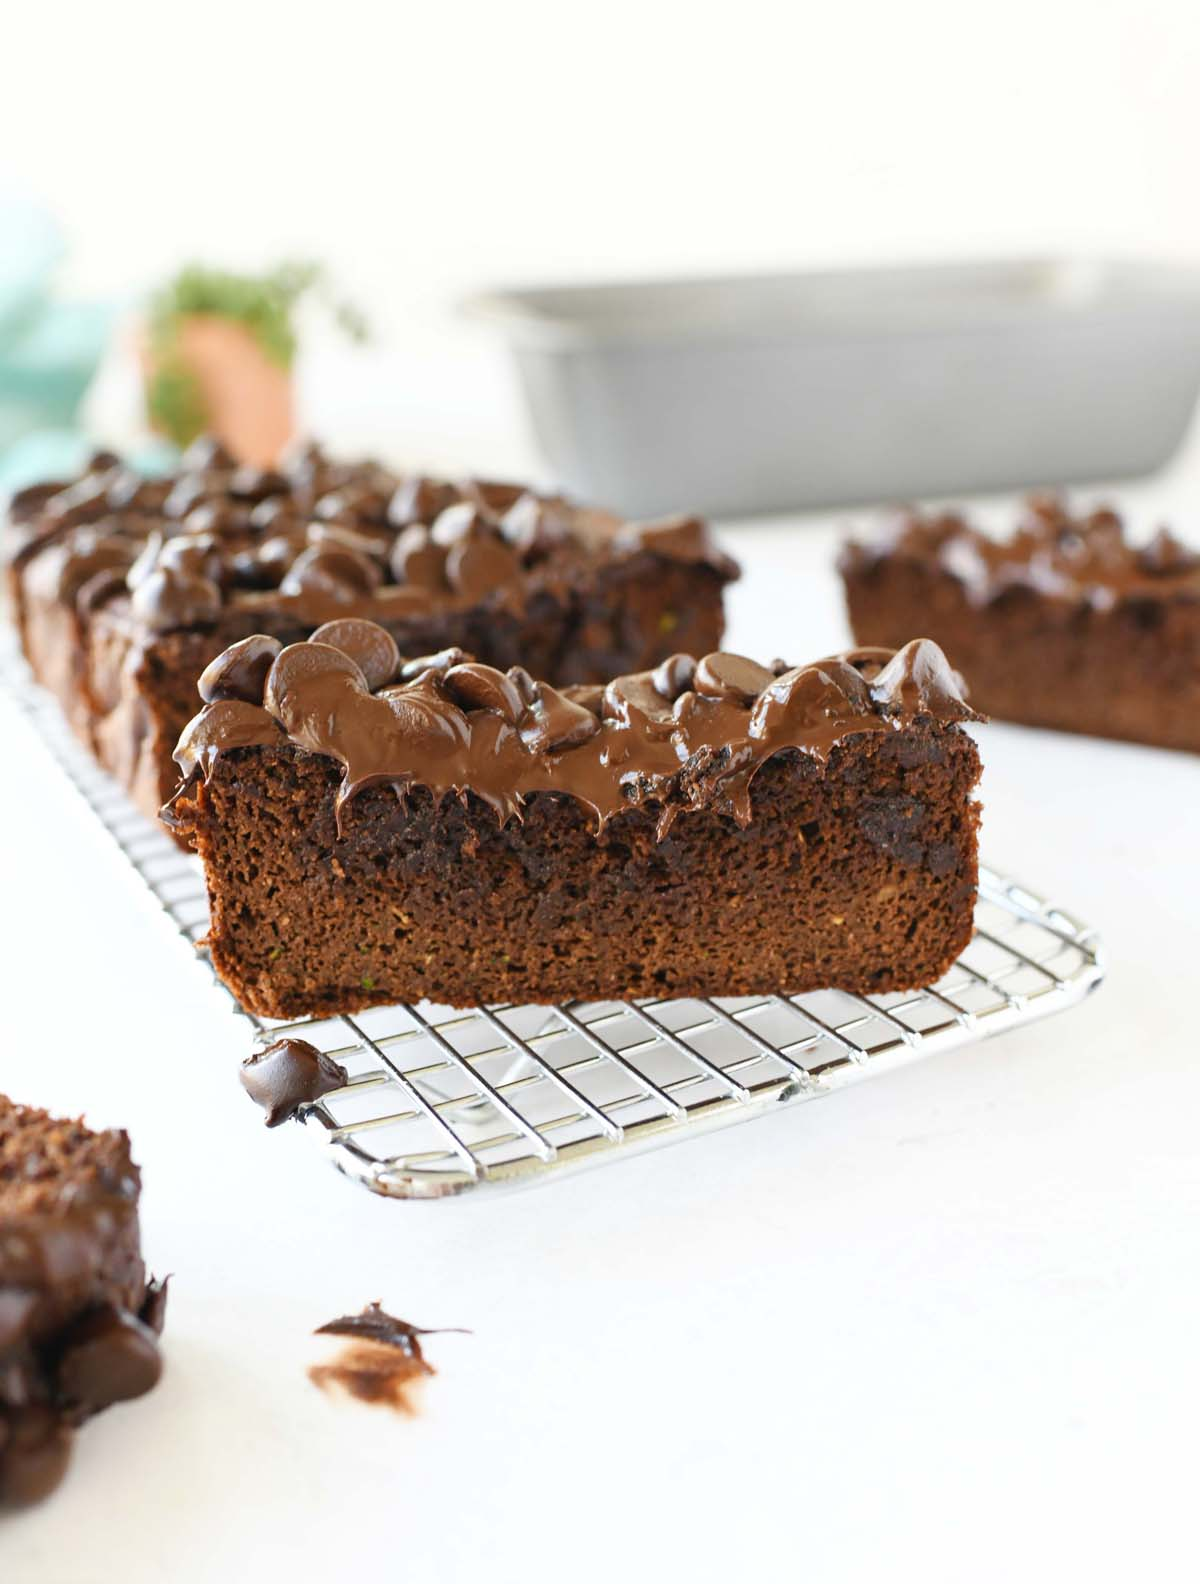 Sliced chocolate zucchini bread with chocolate chips top.